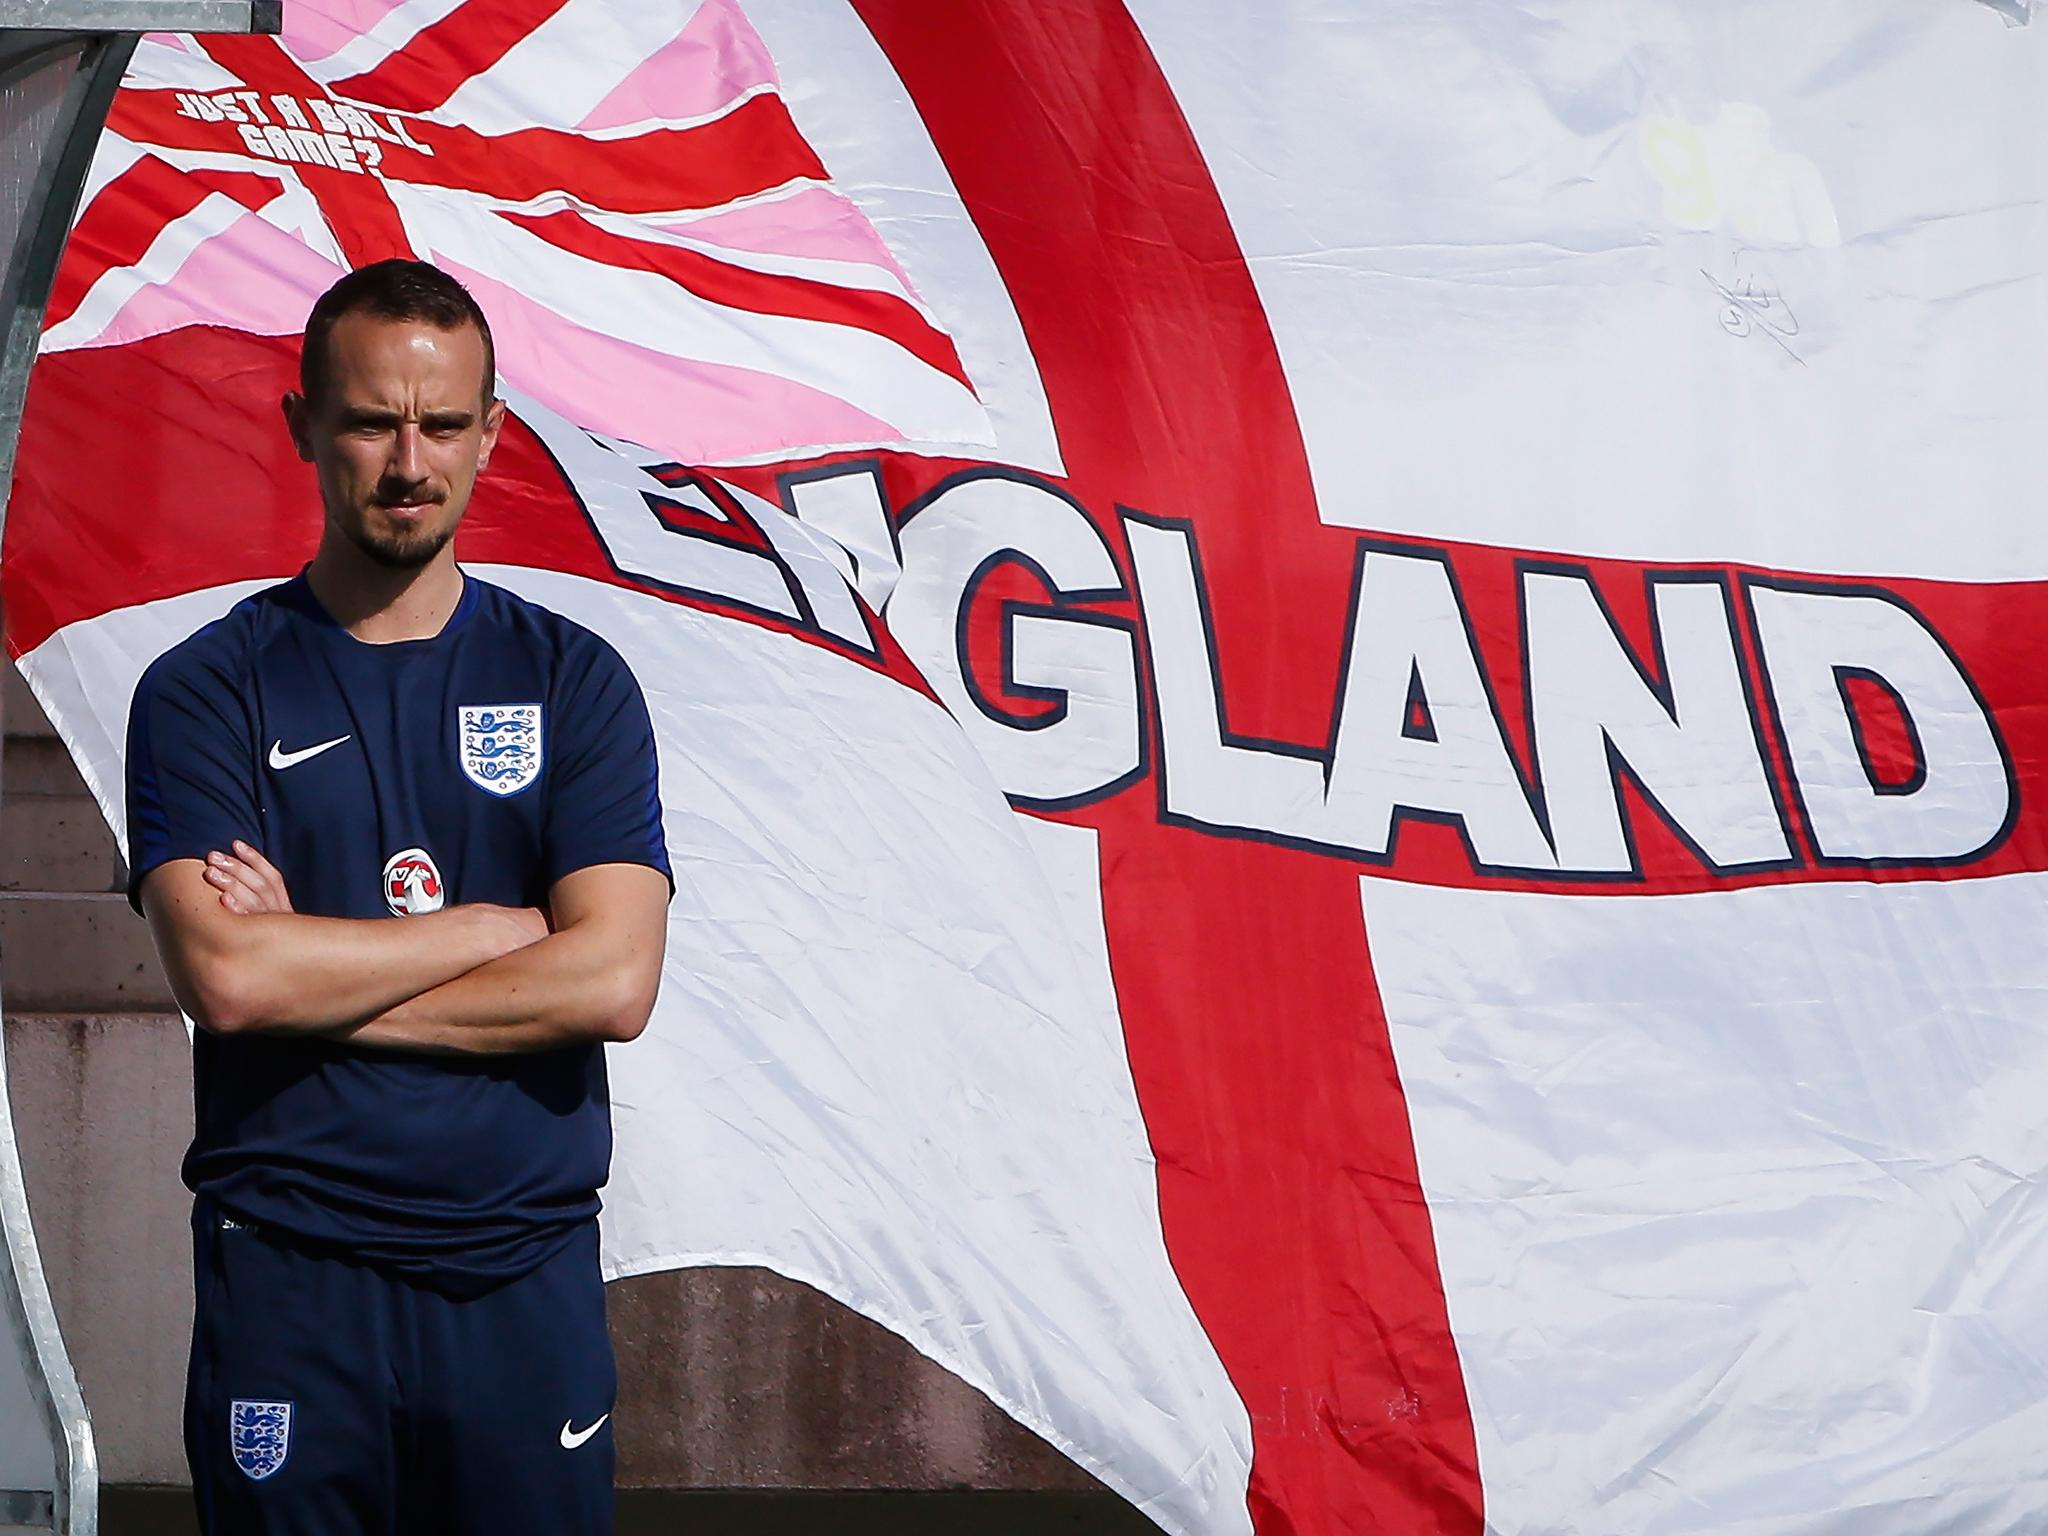 Mark Sampson appointment questioned by Women in Football as FA discovered allegations four years before his sacking